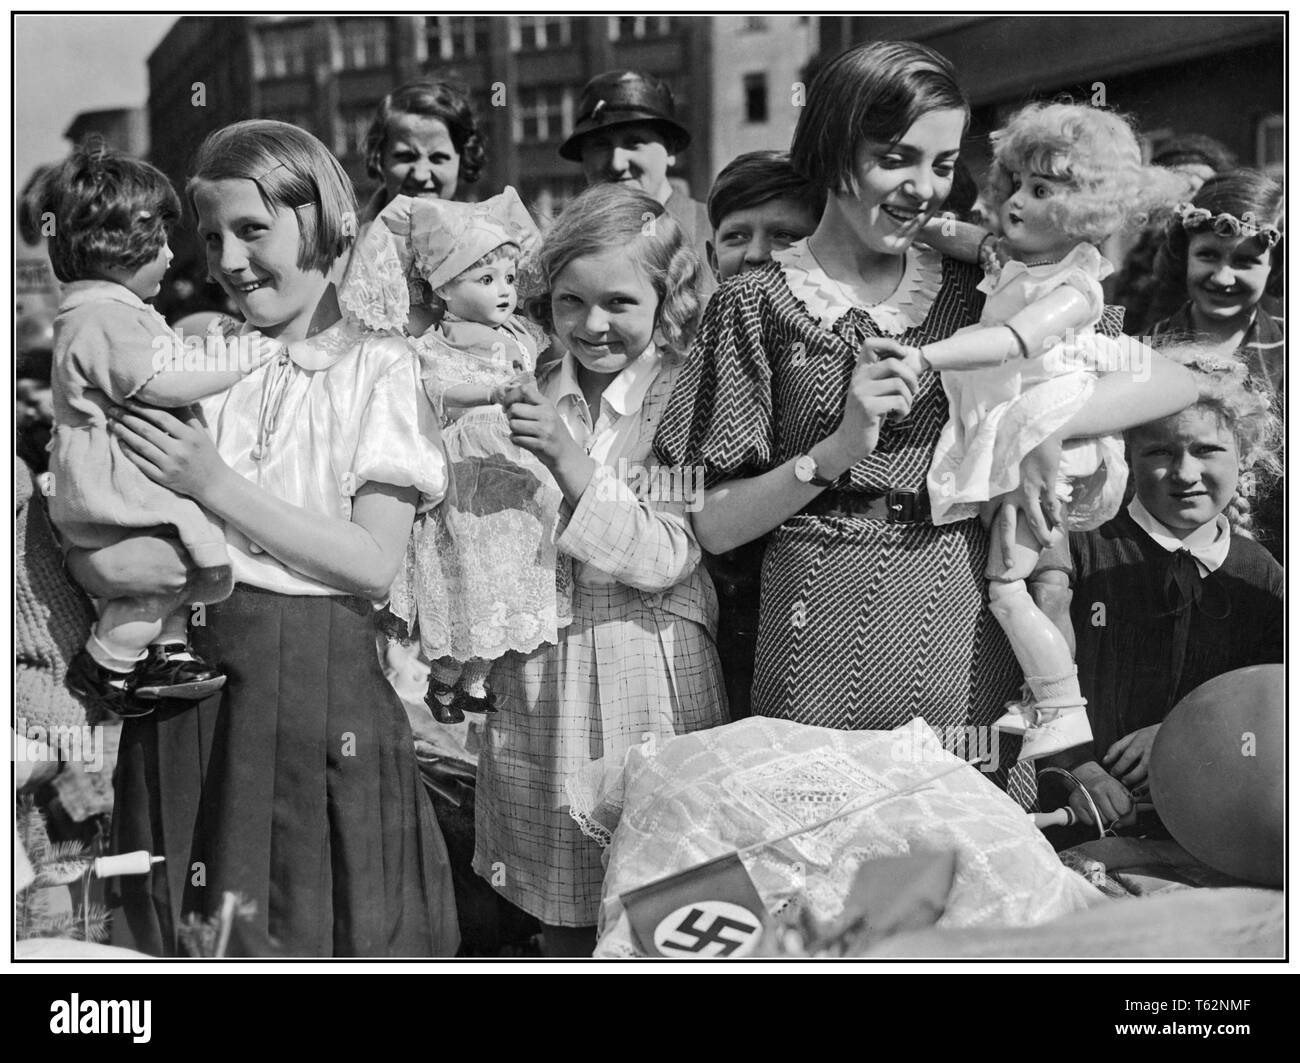 Vintage Nazi Propaganda image of a group of German girls with their dolls and prams, with swastika flag in foreground. They are preparing to go on a Mothers' and Children's day procession in Berlin Germany 1934 - Stock Image